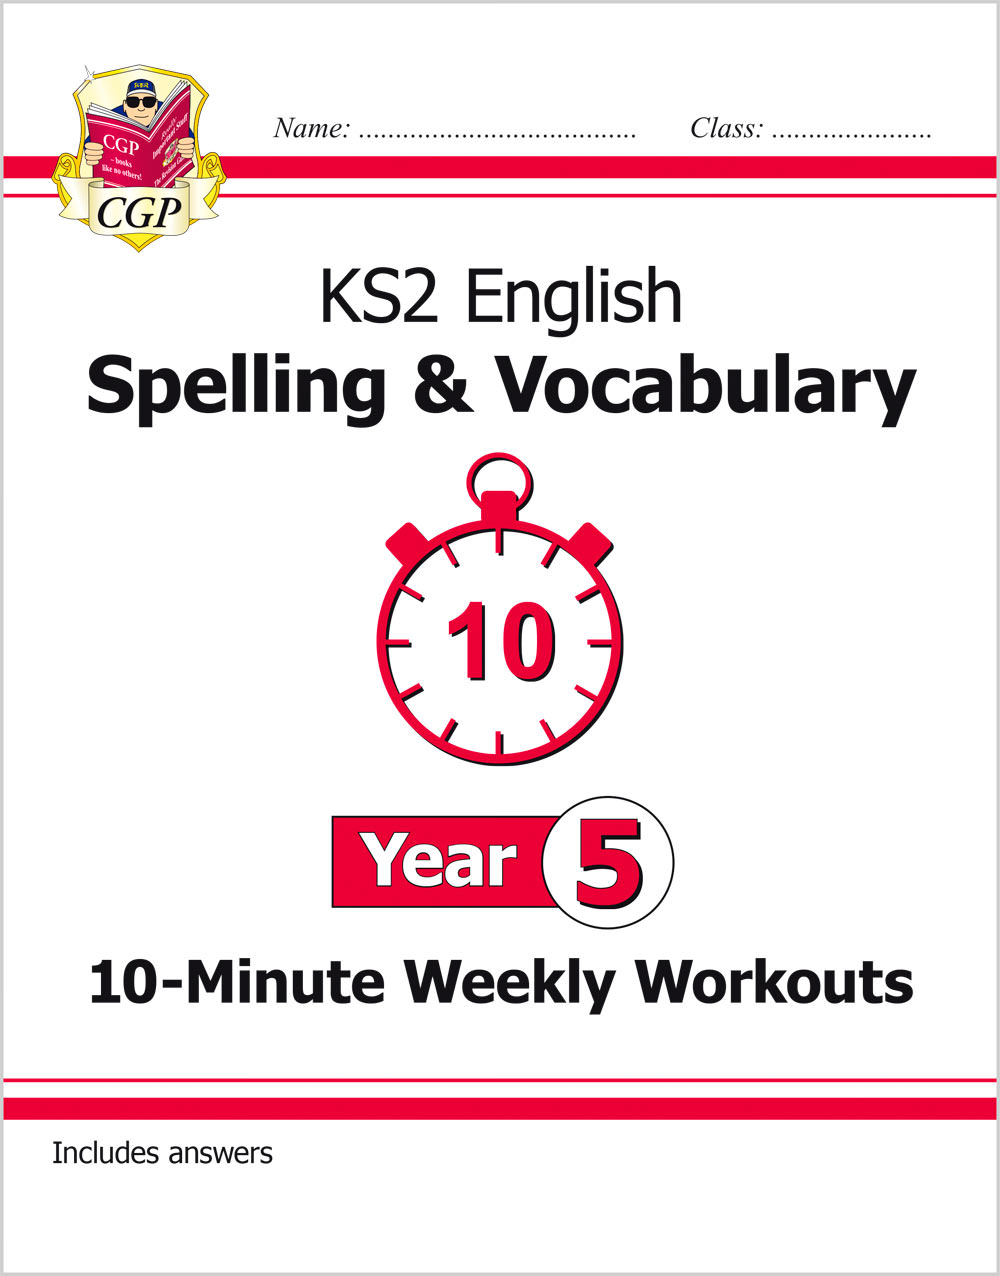 E5VSXW21 - New KS2 English 10-Minute Weekly Workouts: Spelling & Vocabulary - Year 5